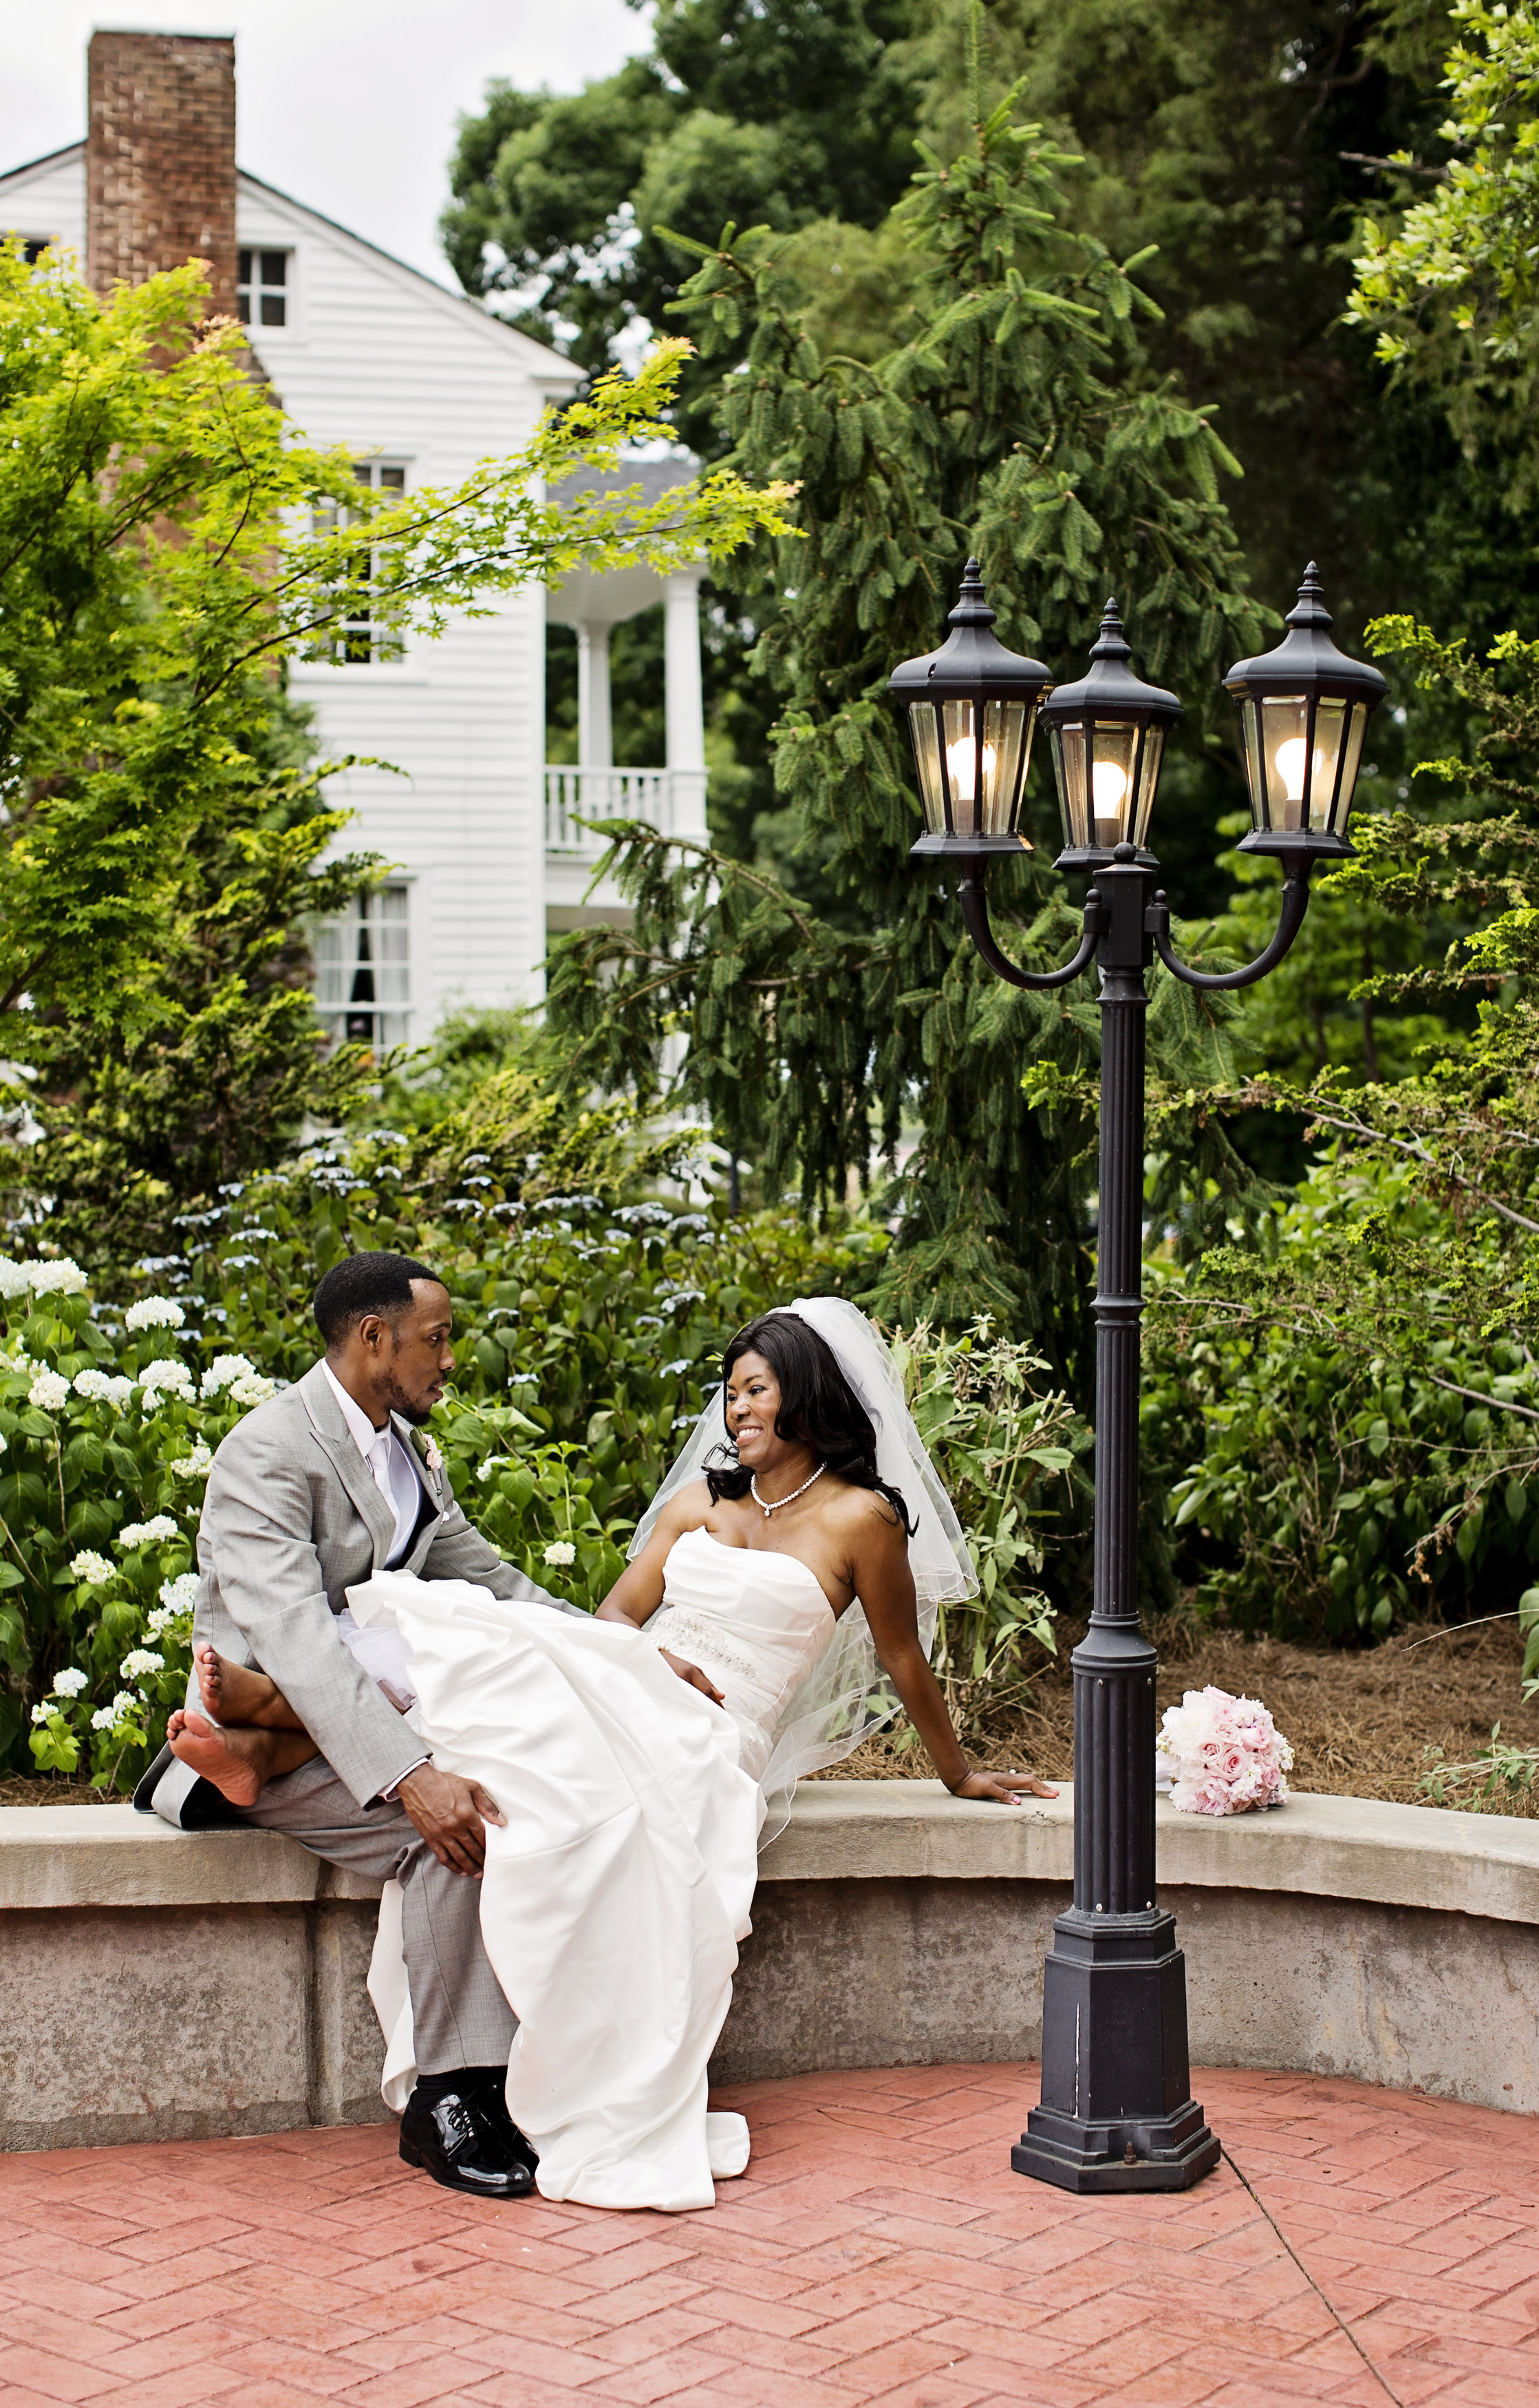 View More: http://jacquierives.pass.us/parks-wedding-day